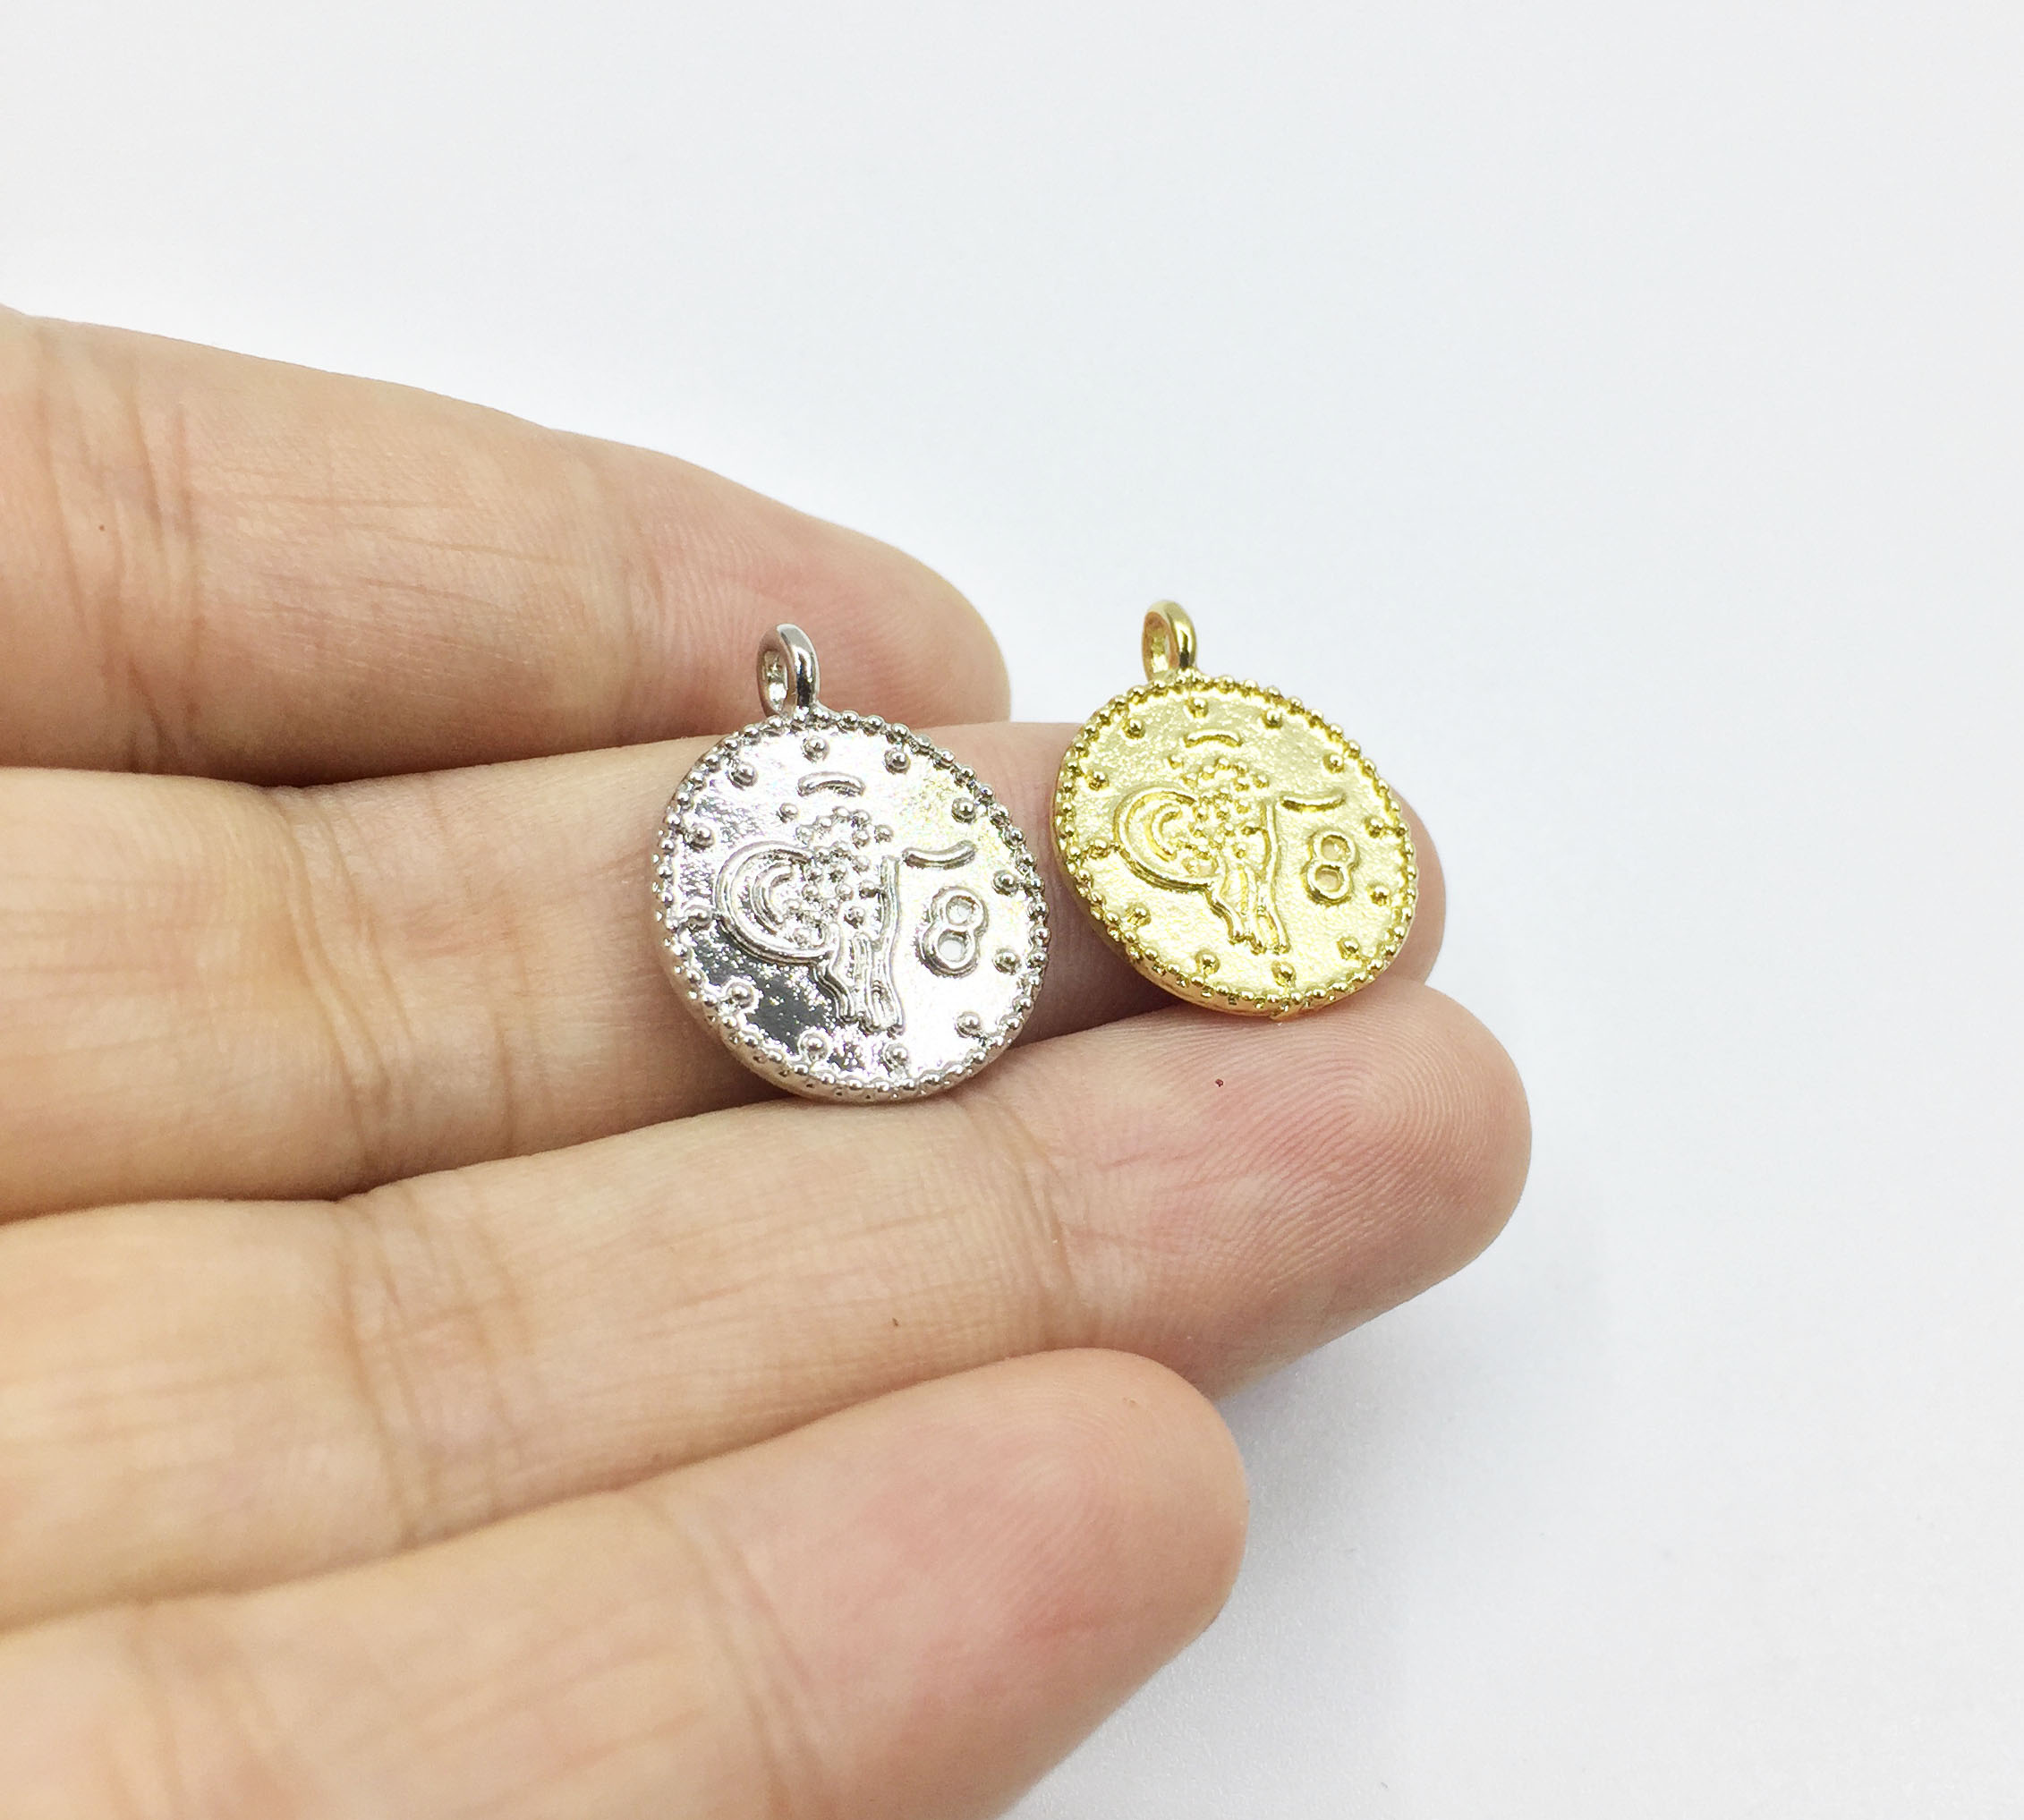 Eruifa Jewelry Necklace Charms-Pendant Coin Symbol Zinc-Alloy Gold/silver-Plated 20pcs